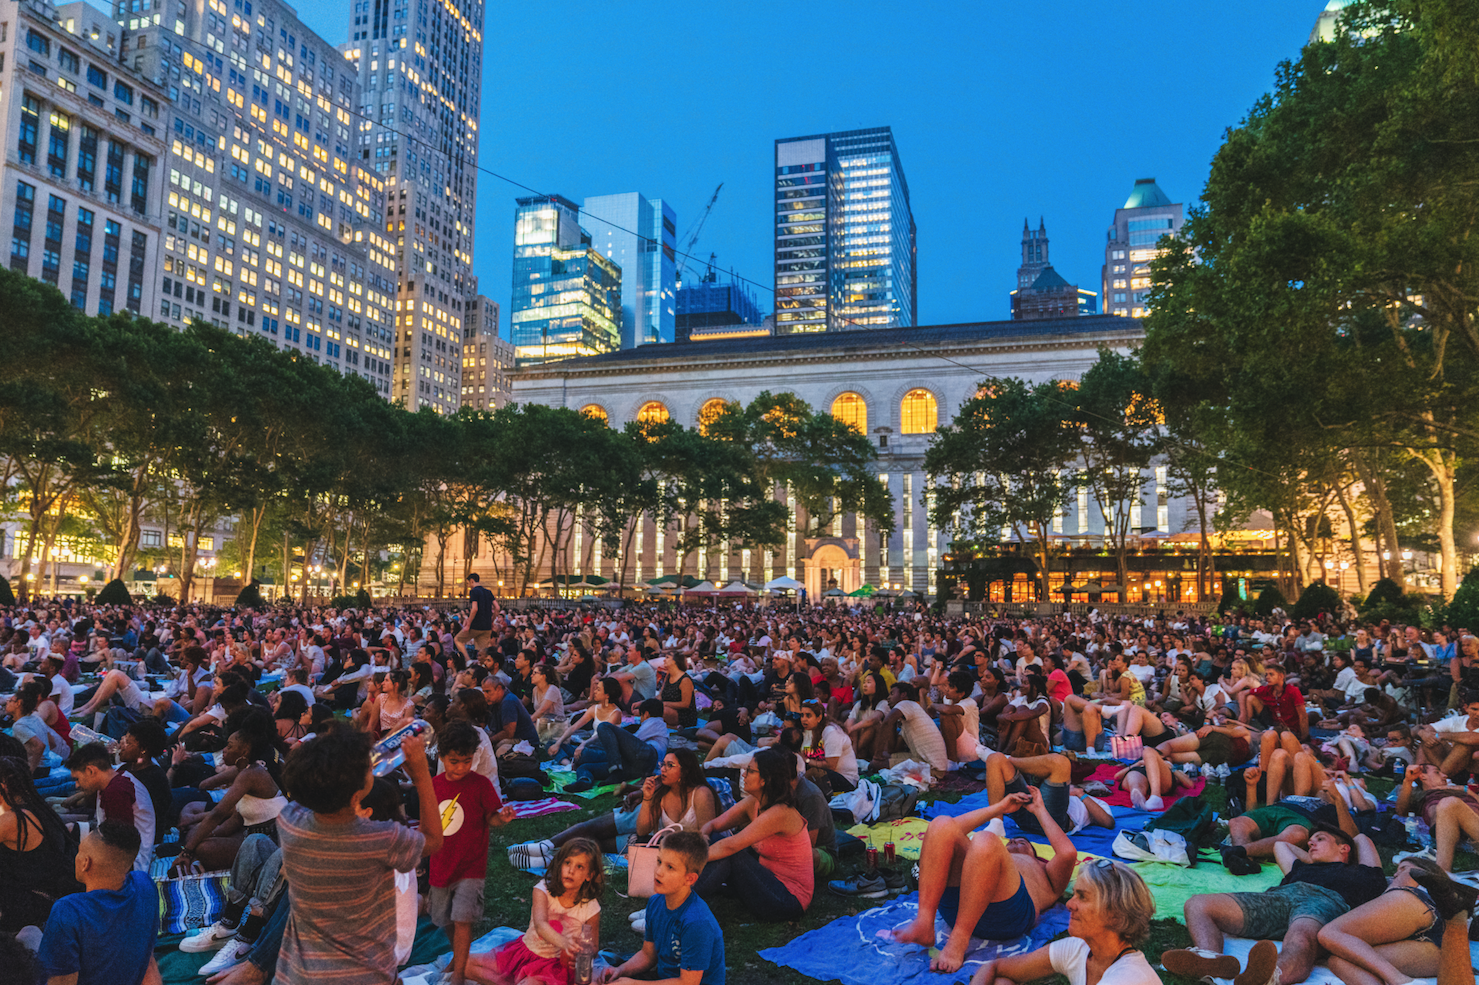 Check out the films for Bryant Park's outdoor movie nights